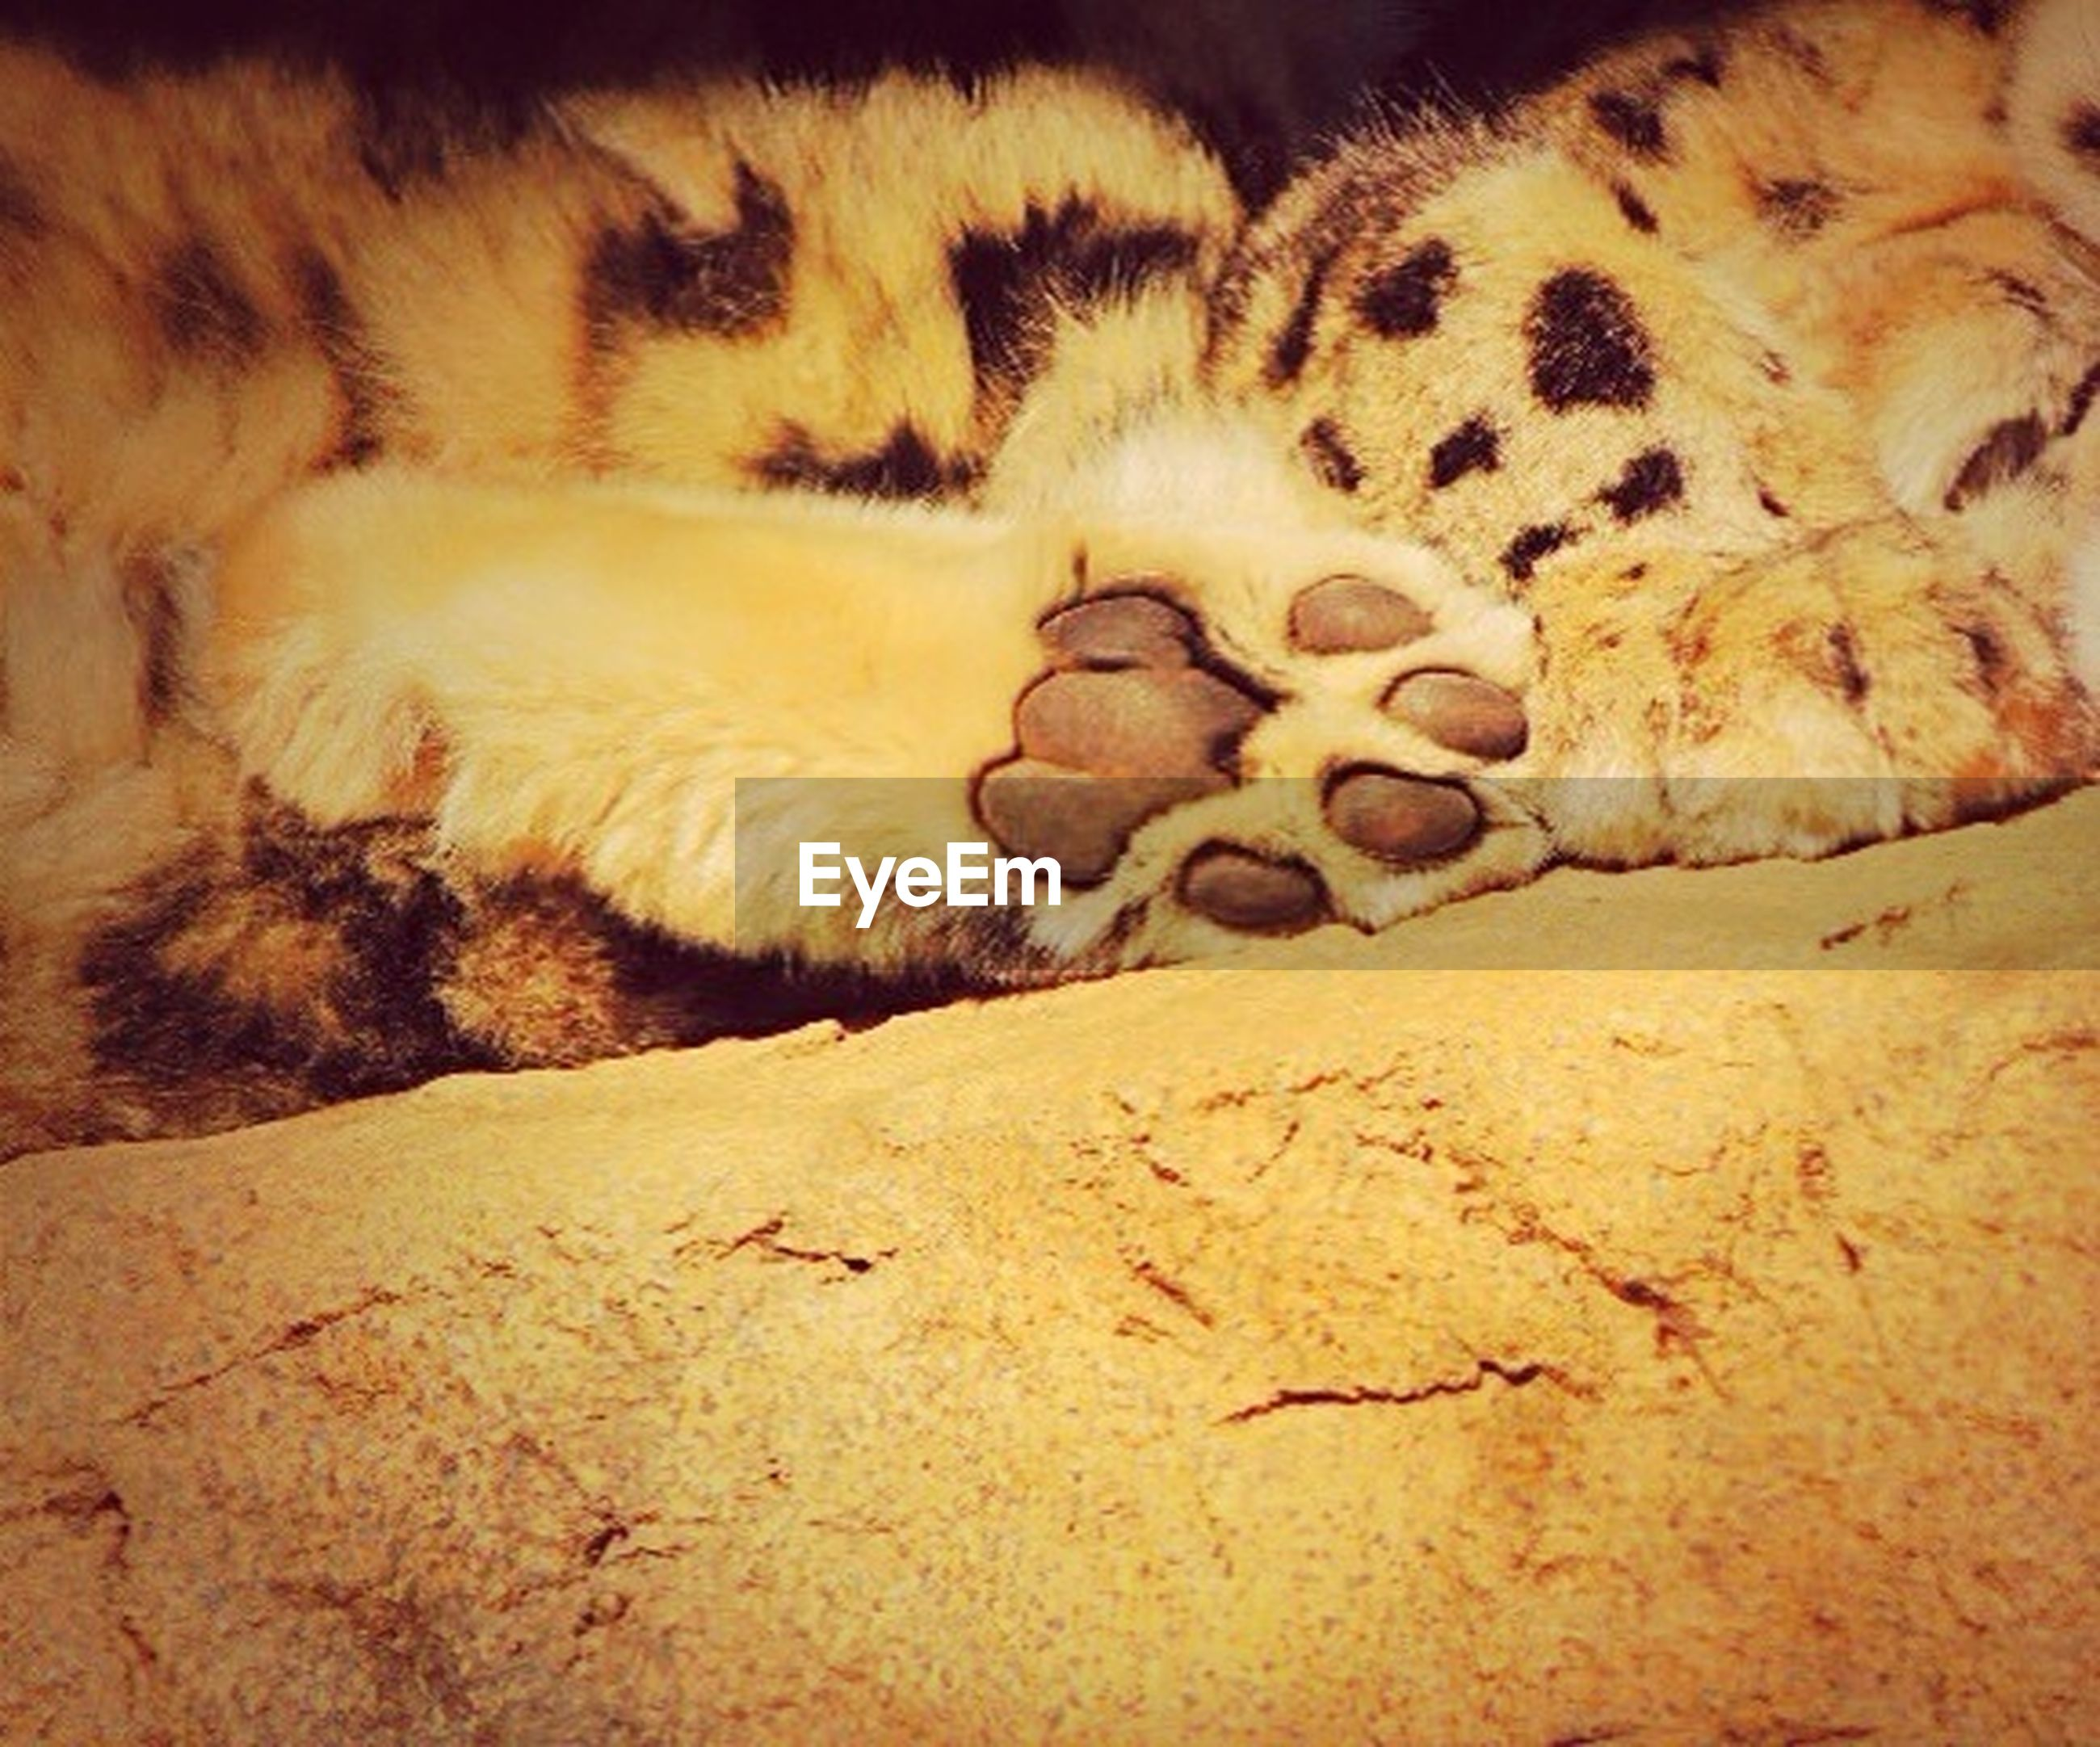 animal themes, mammal, domestic animals, one animal, pets, sleeping, sand, relaxation, no people, resting, lying down, nature, brown, indoors, day, high angle view, sunlight, rock - object, desert